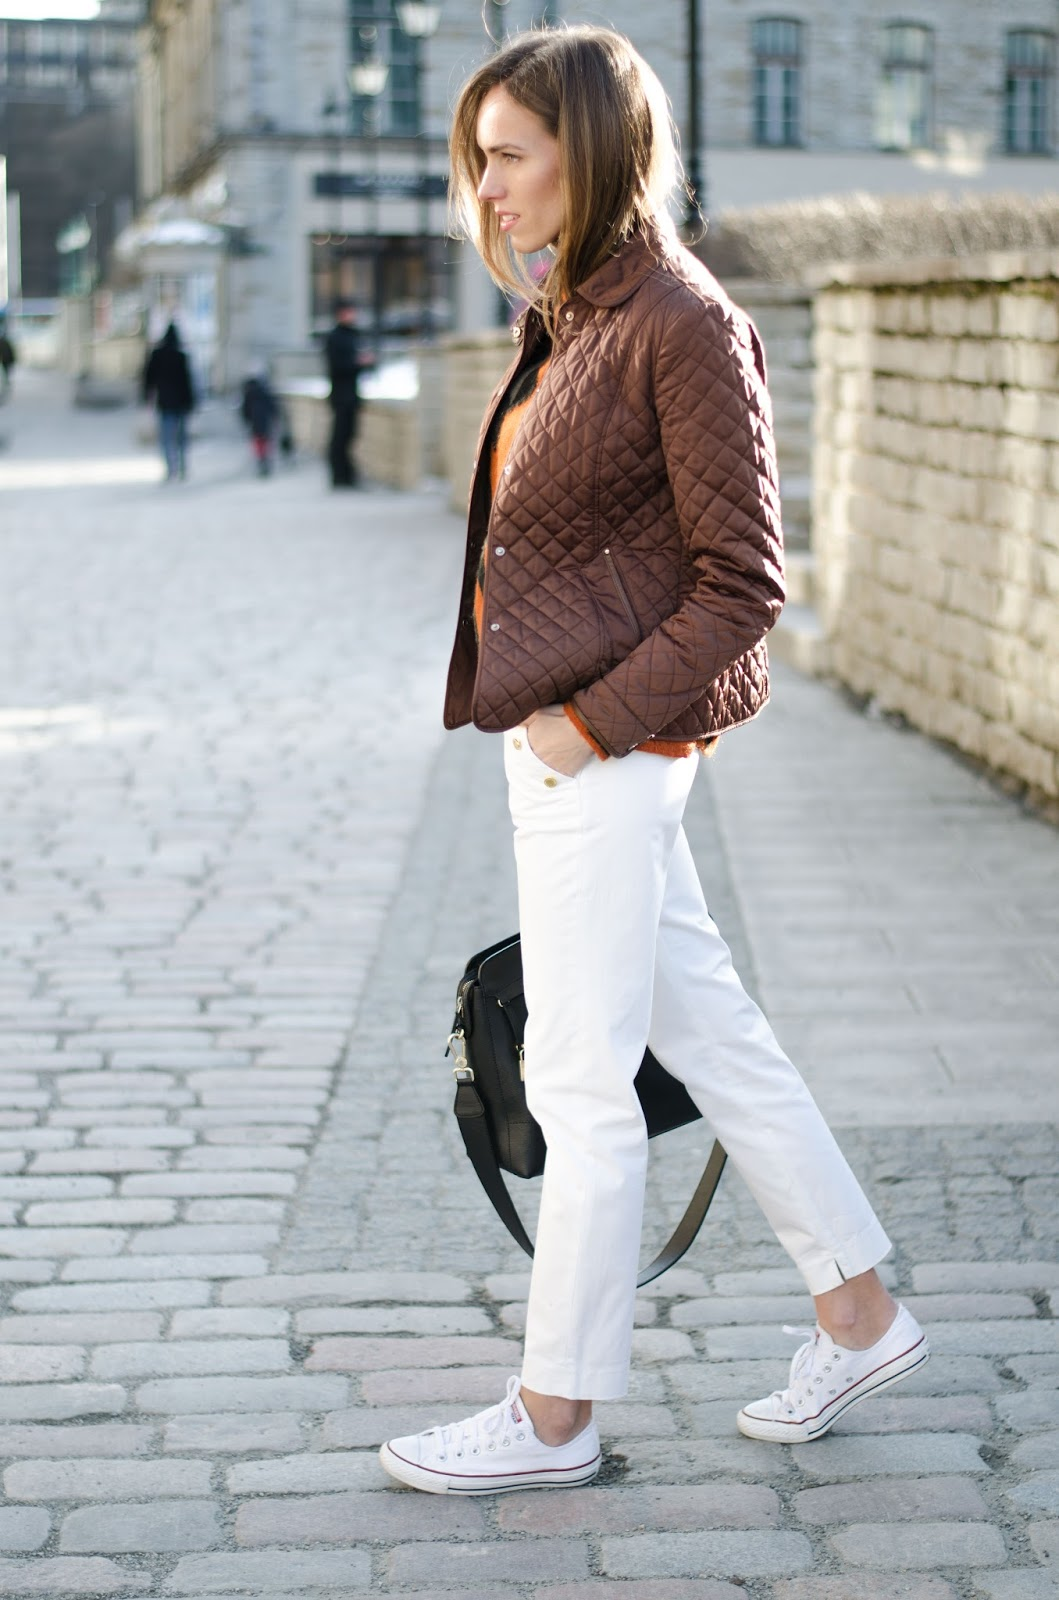 kristjaana mere quilted jacket white pants sneakers spring outfit